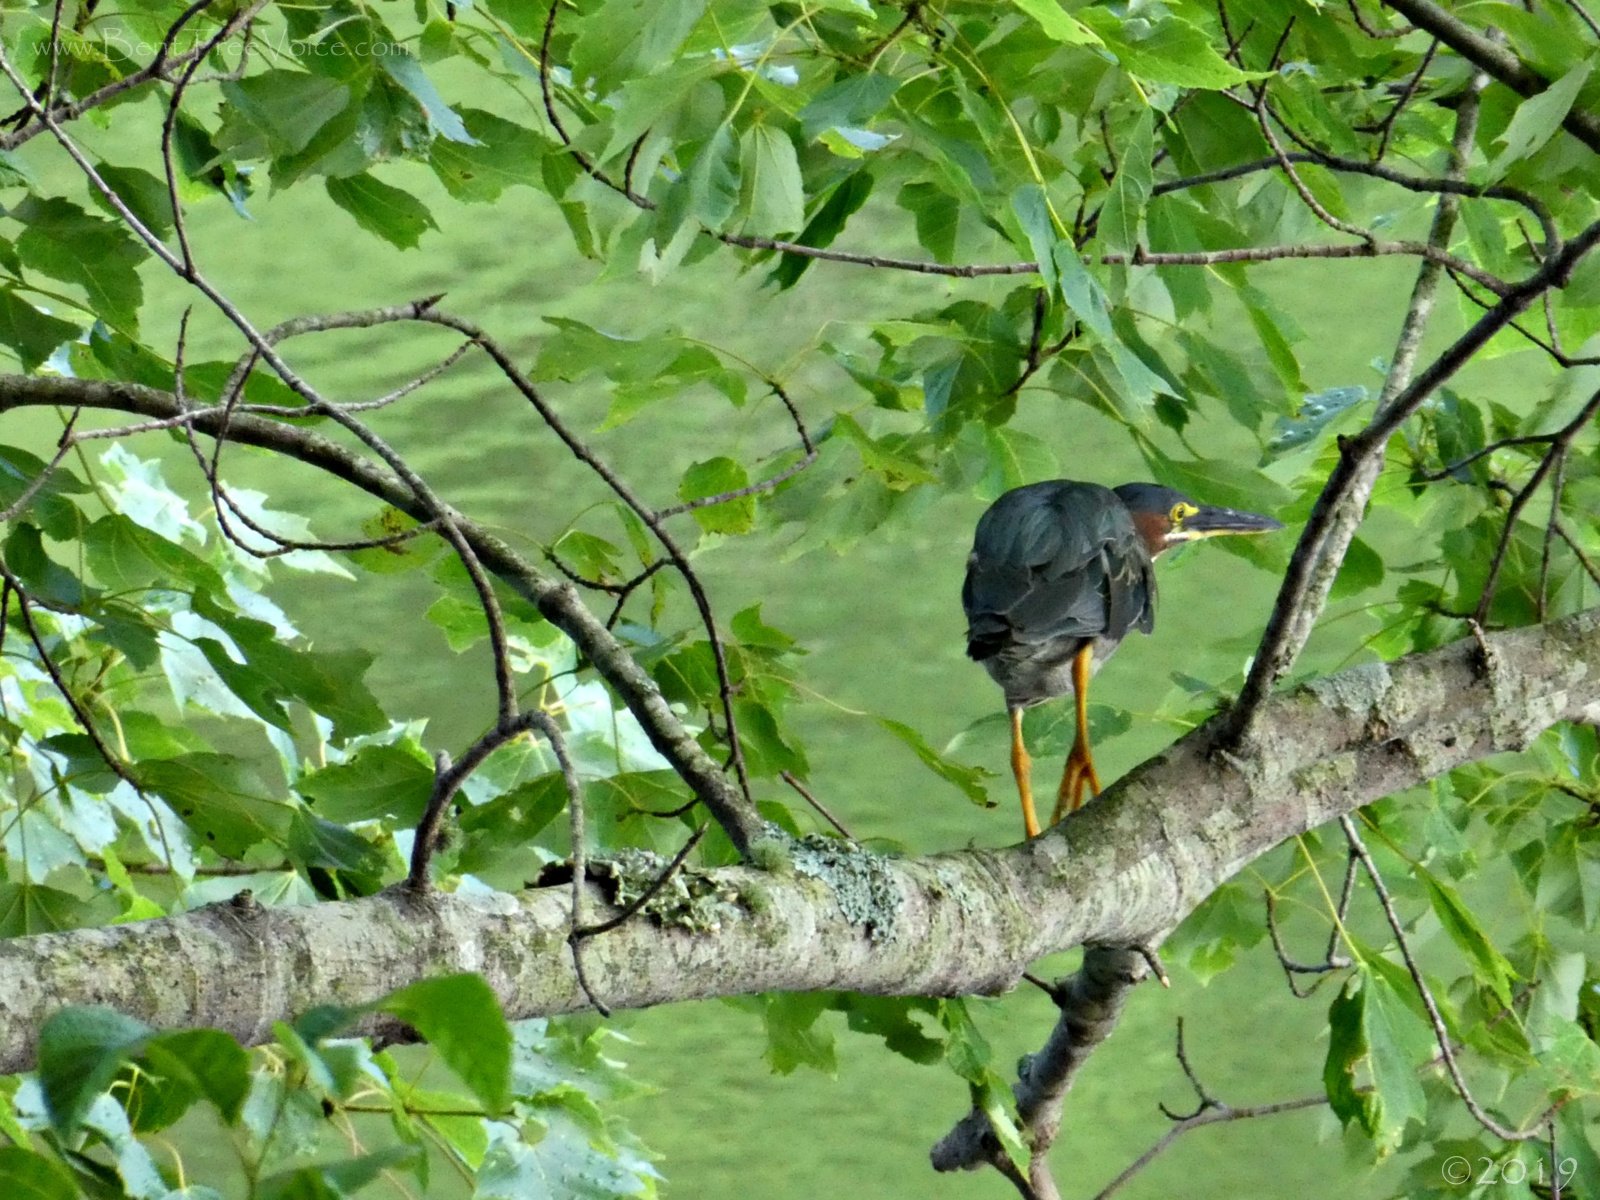 July 13, 2019 - Another Green Heron in Bent Tree